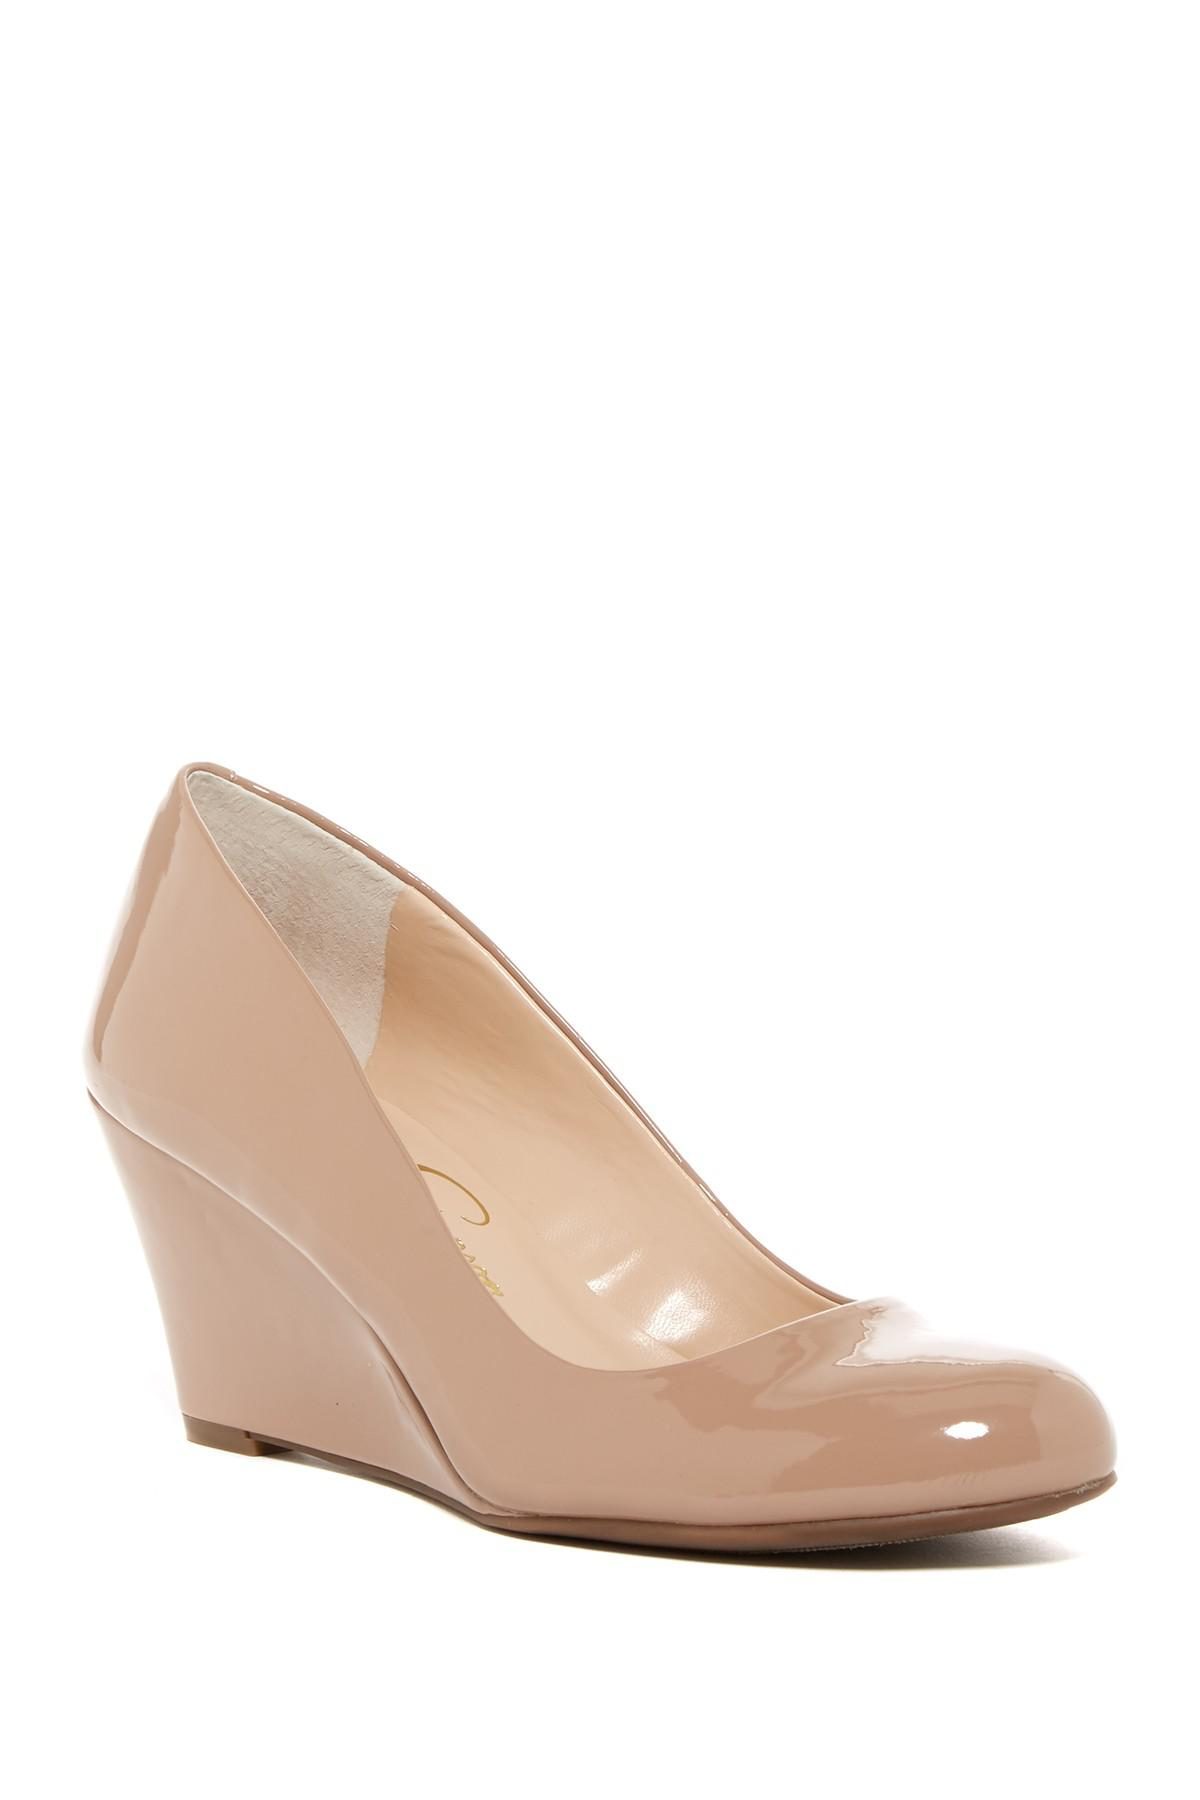 a07849be4e5 Jessica Simpson. Women s Natural Suzanna Wedge Pump - Multiple Widths  Available